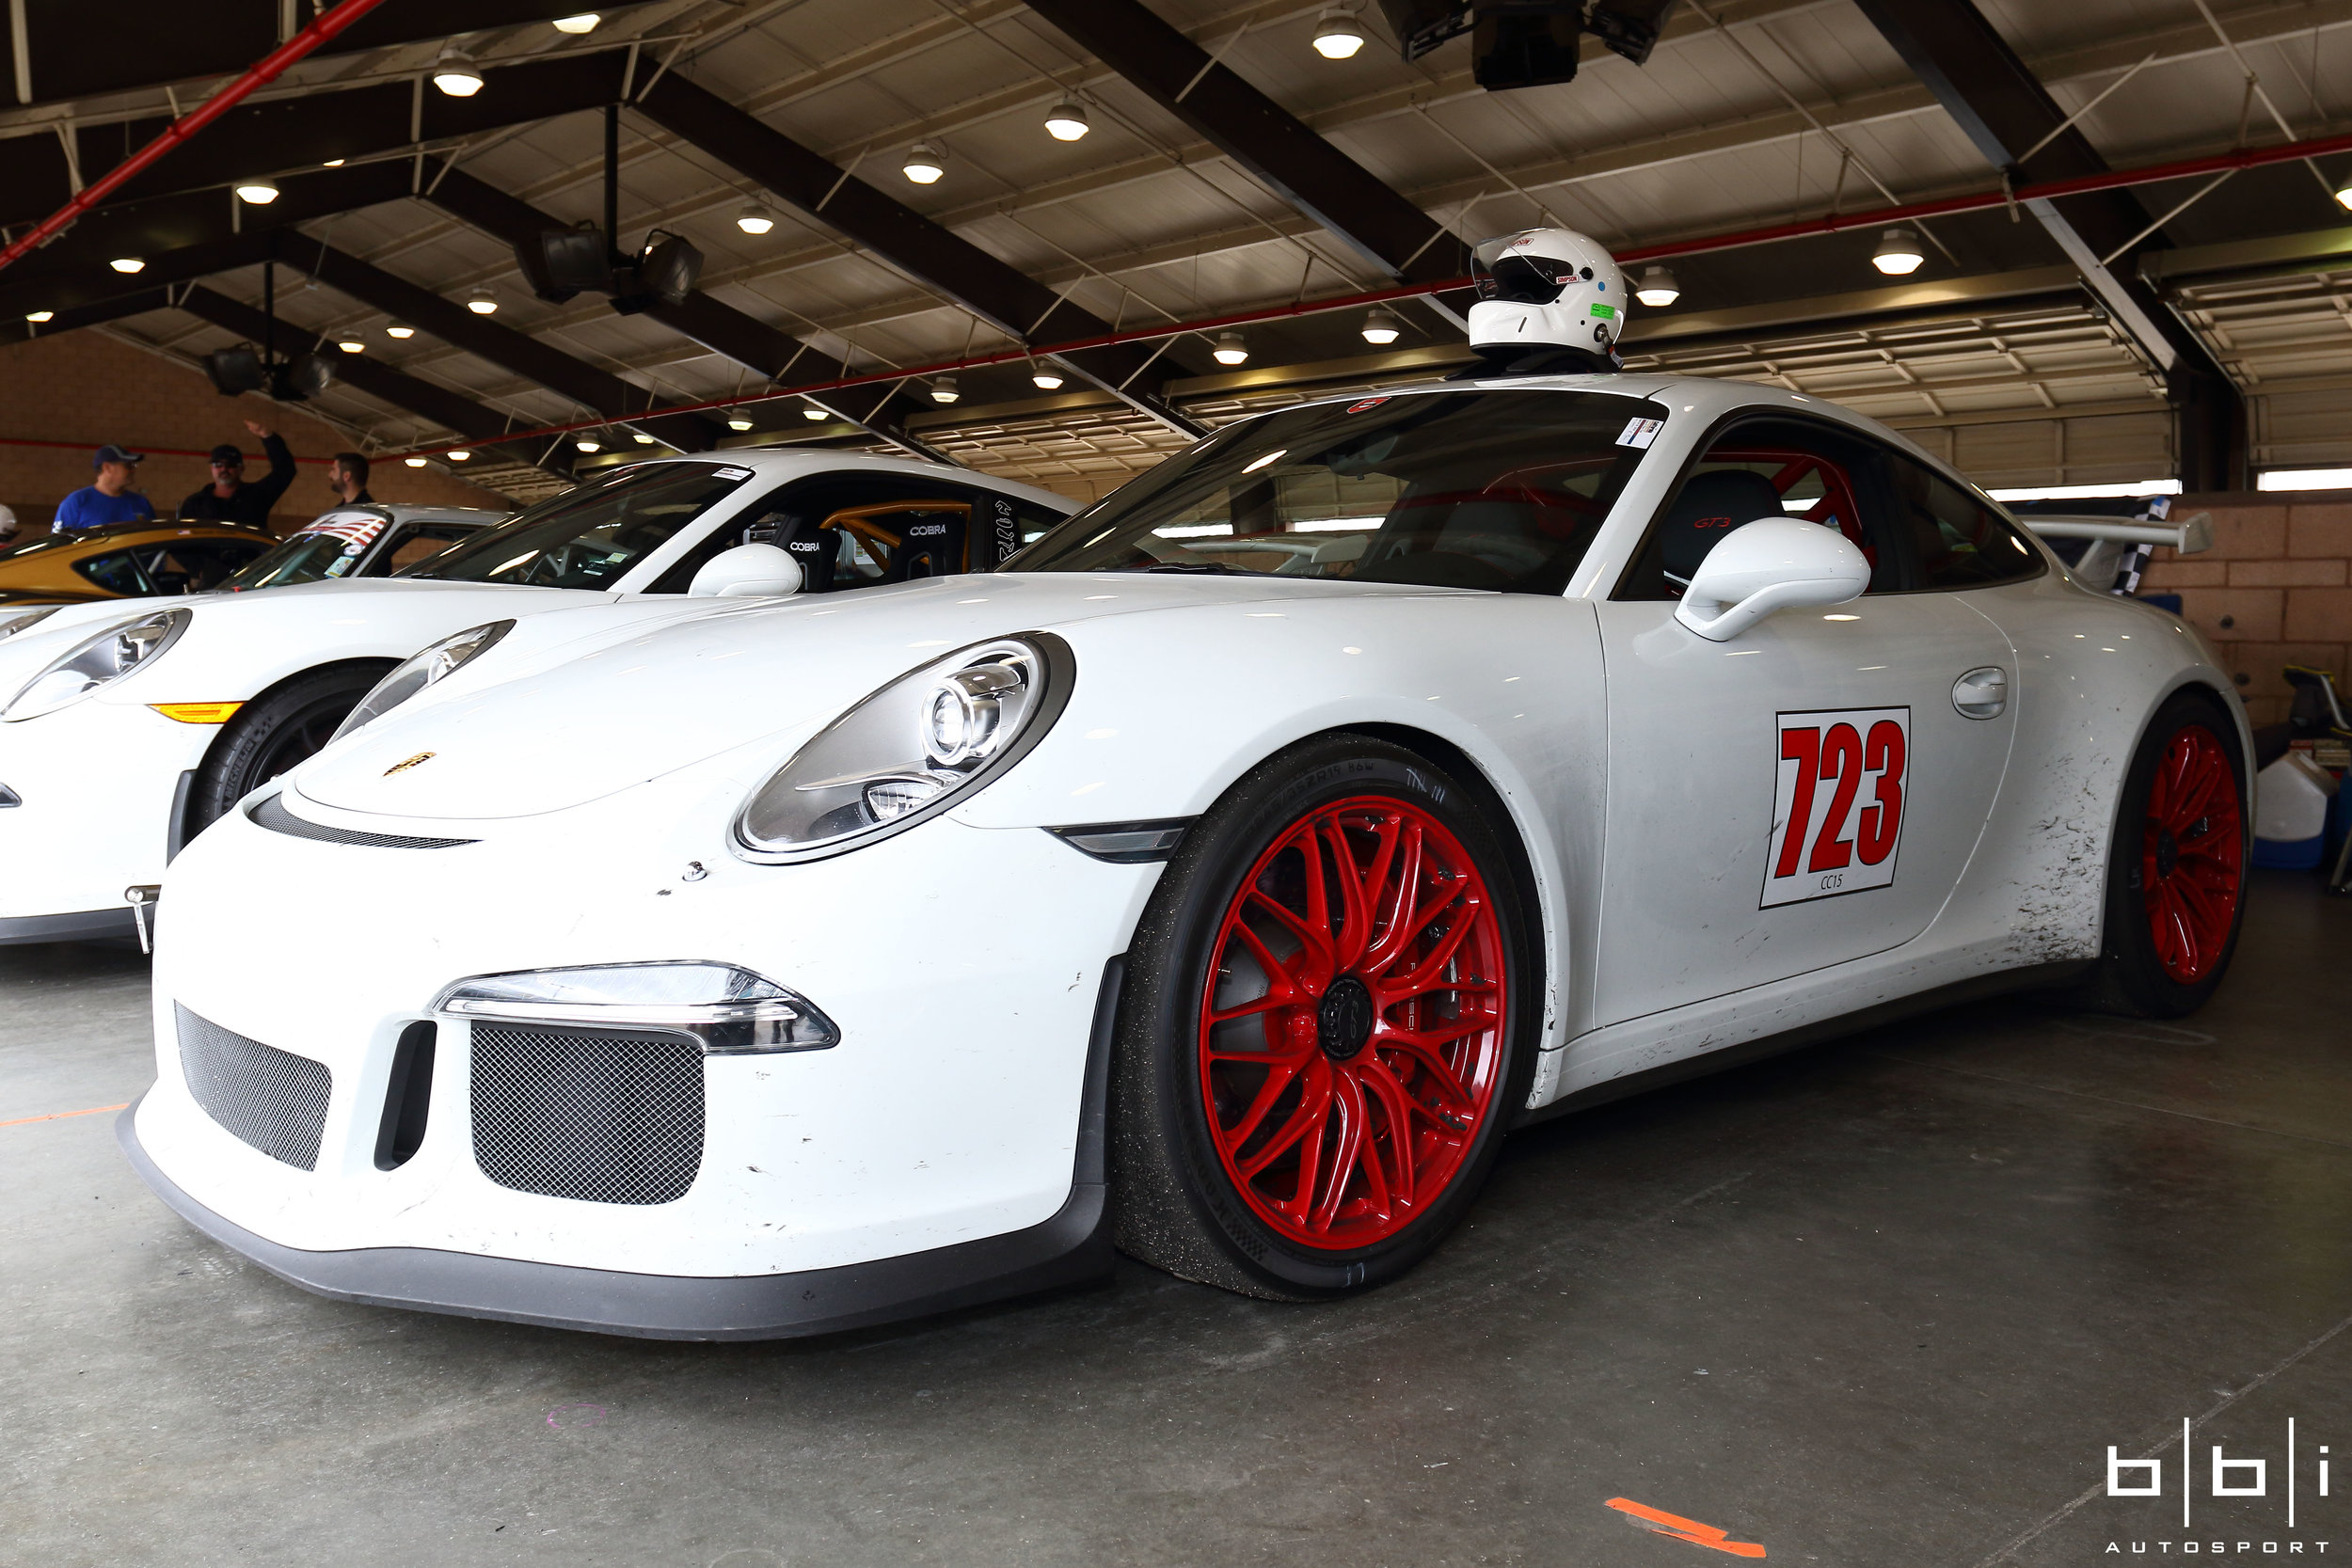 Porsche 991 GT3 with Gloss Red BBi Roll Bar. Covered with rubber tire marks, we're always stoked to see our customer cars get properly used on the track as it was designed for.